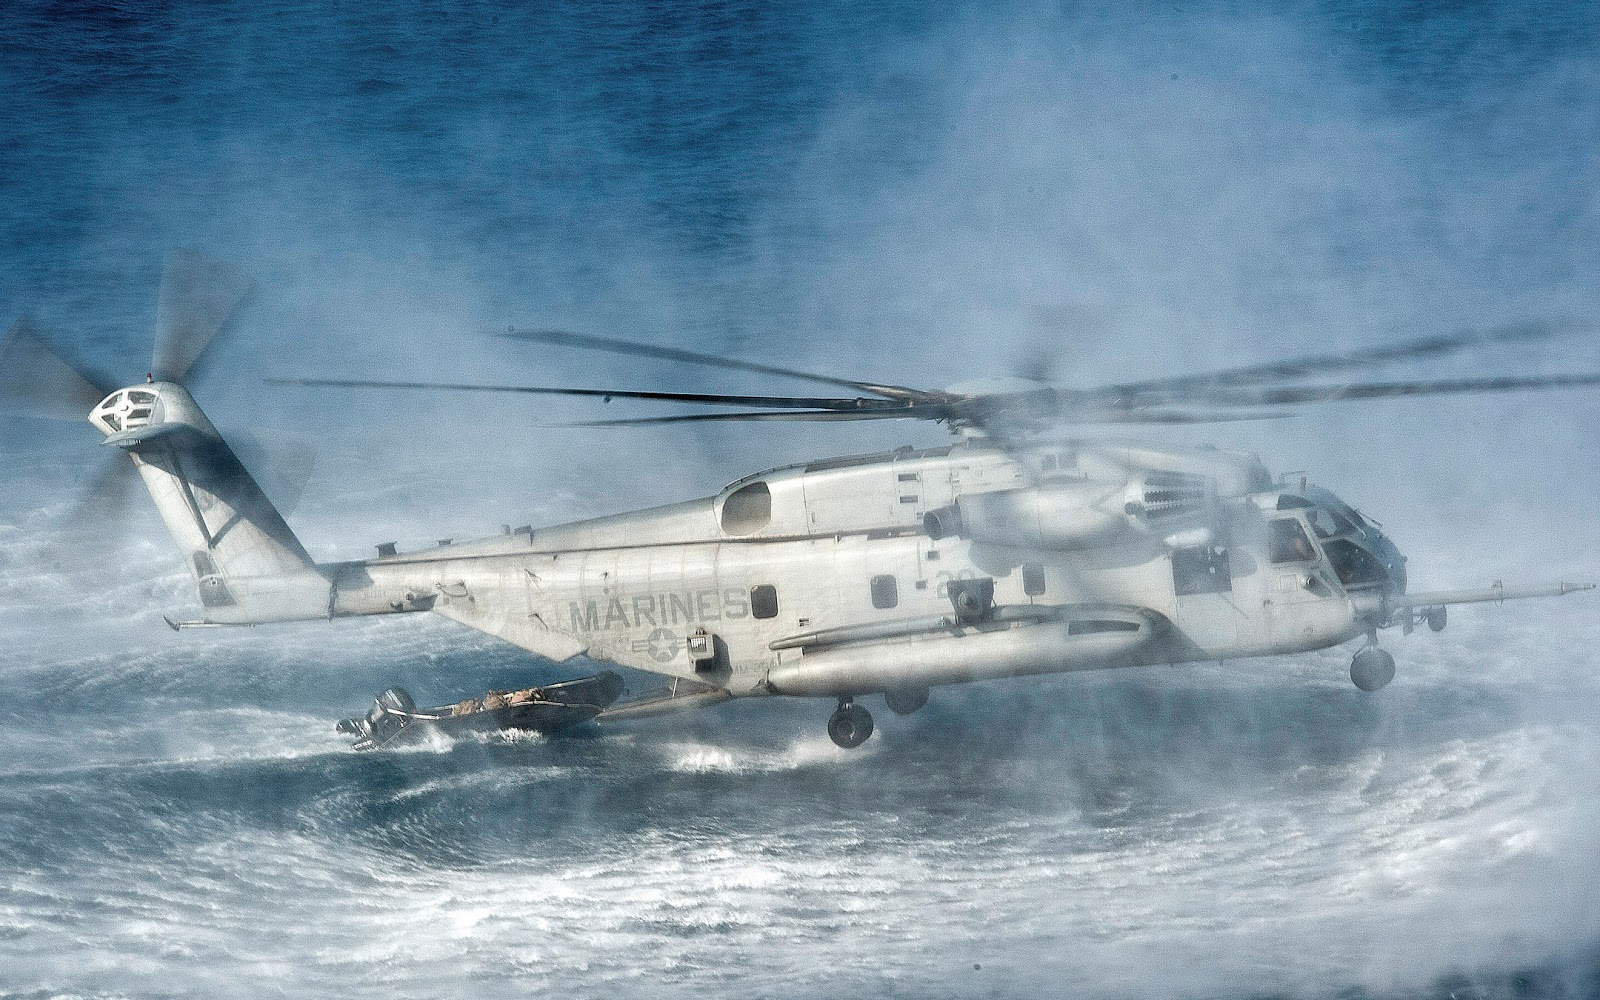 ch 53e super stallion helicopter wallpapers - 15 Sikorsky Ch 53e Super Stallion HD Wallpapers